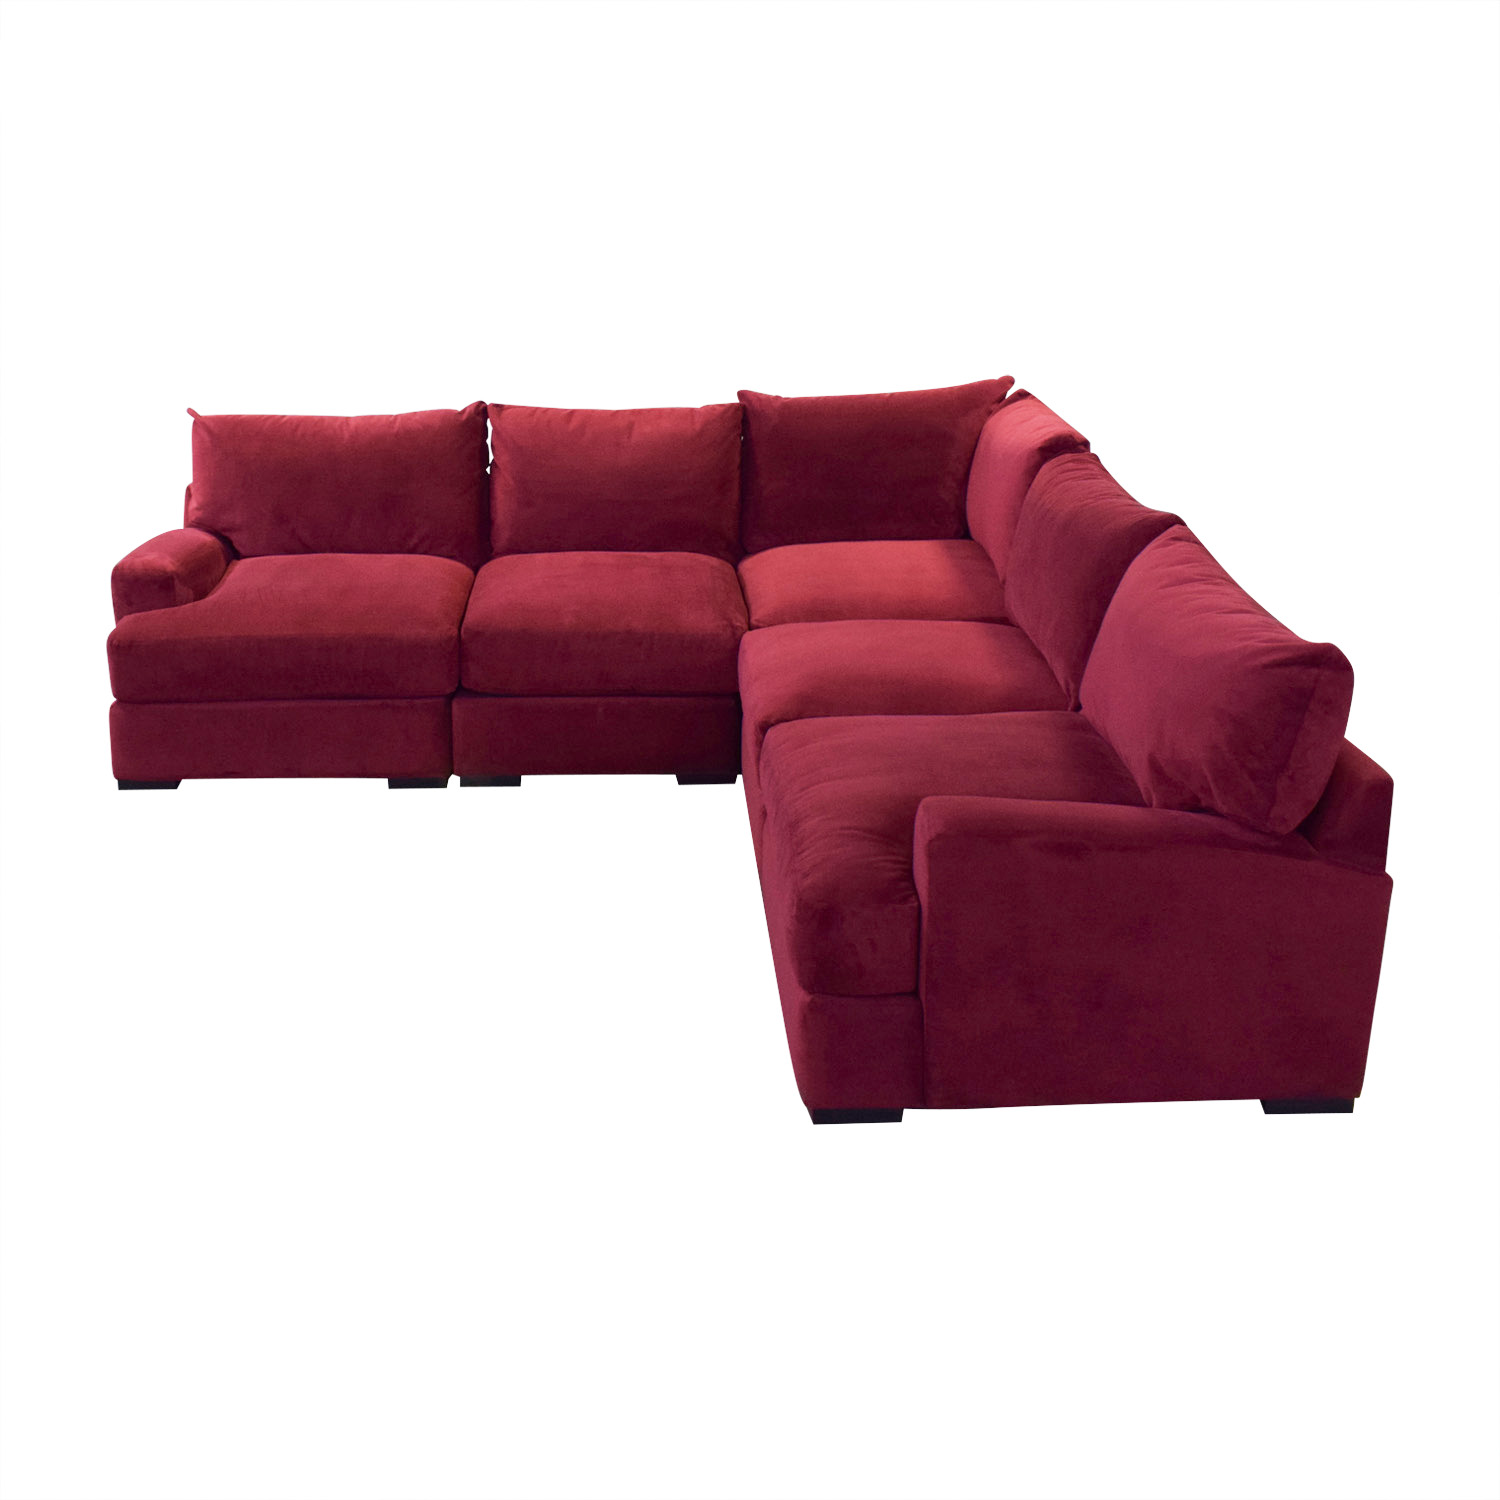 Macy's Macy's Rhyder Sectional coupon